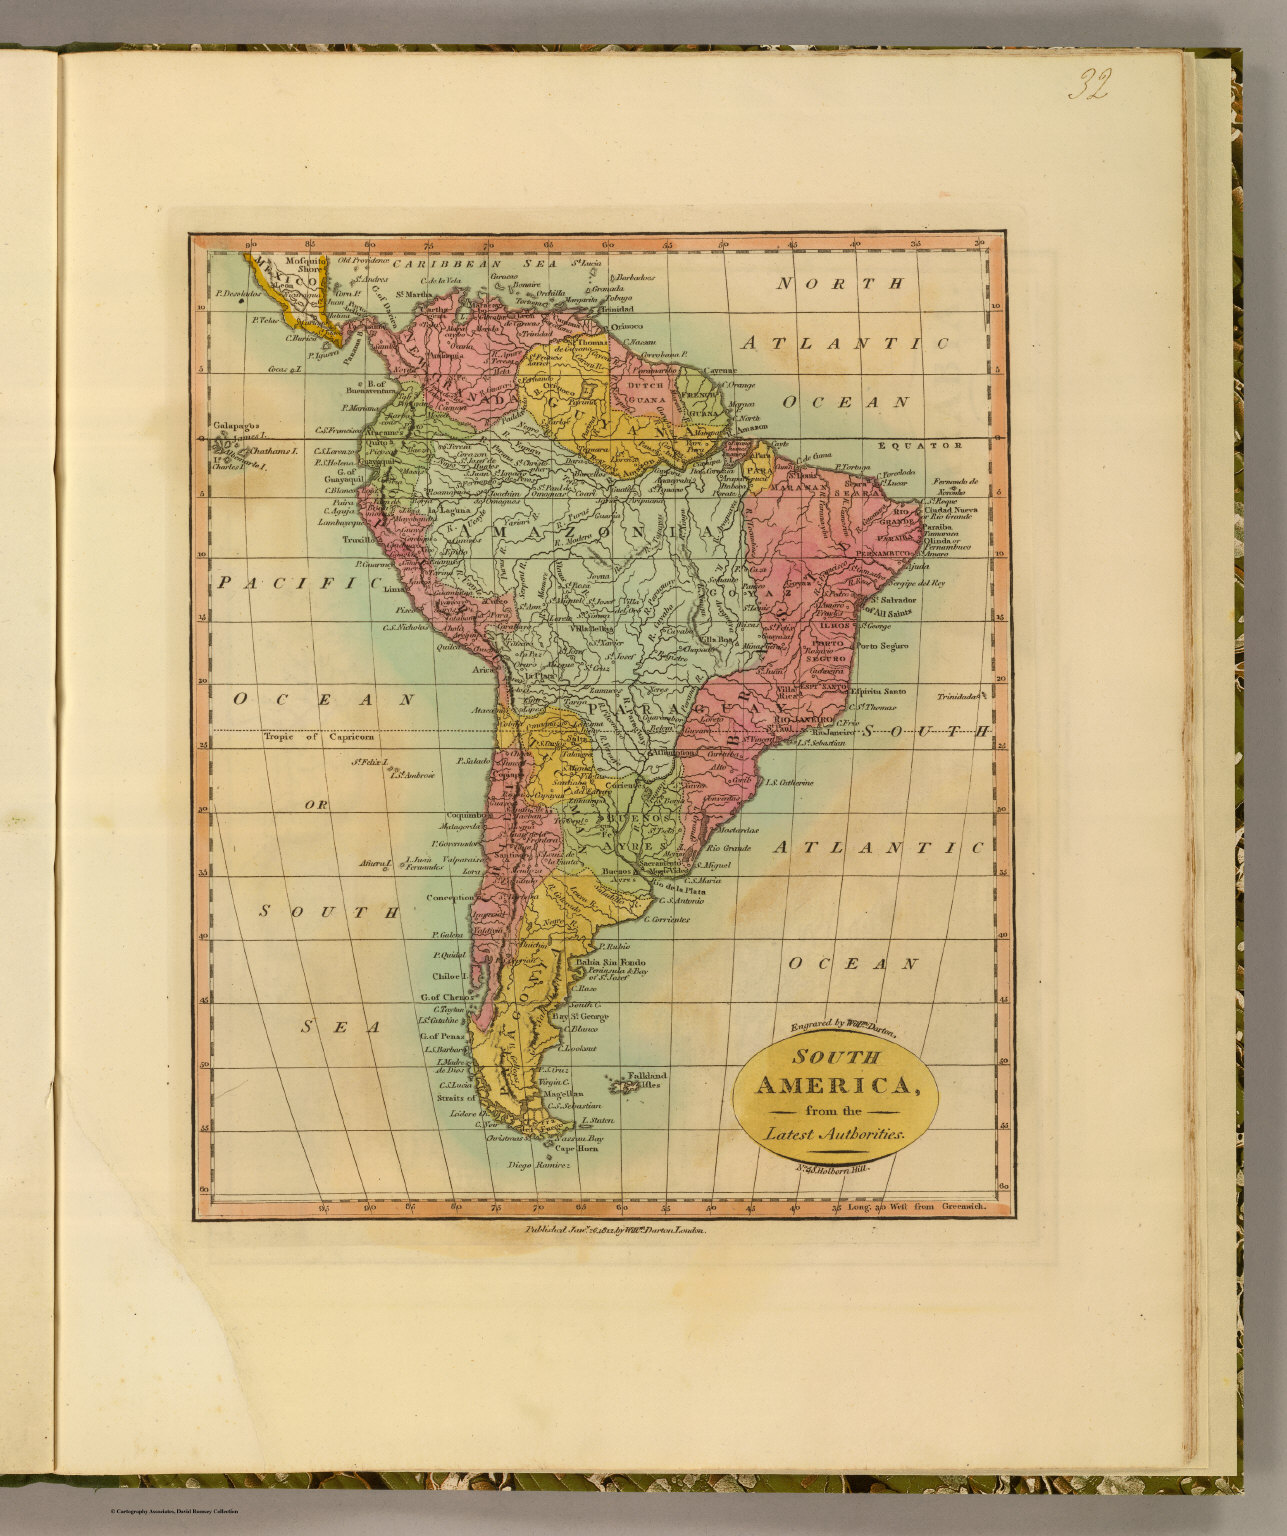 South America. - David Rumsey Historical Map Collection on